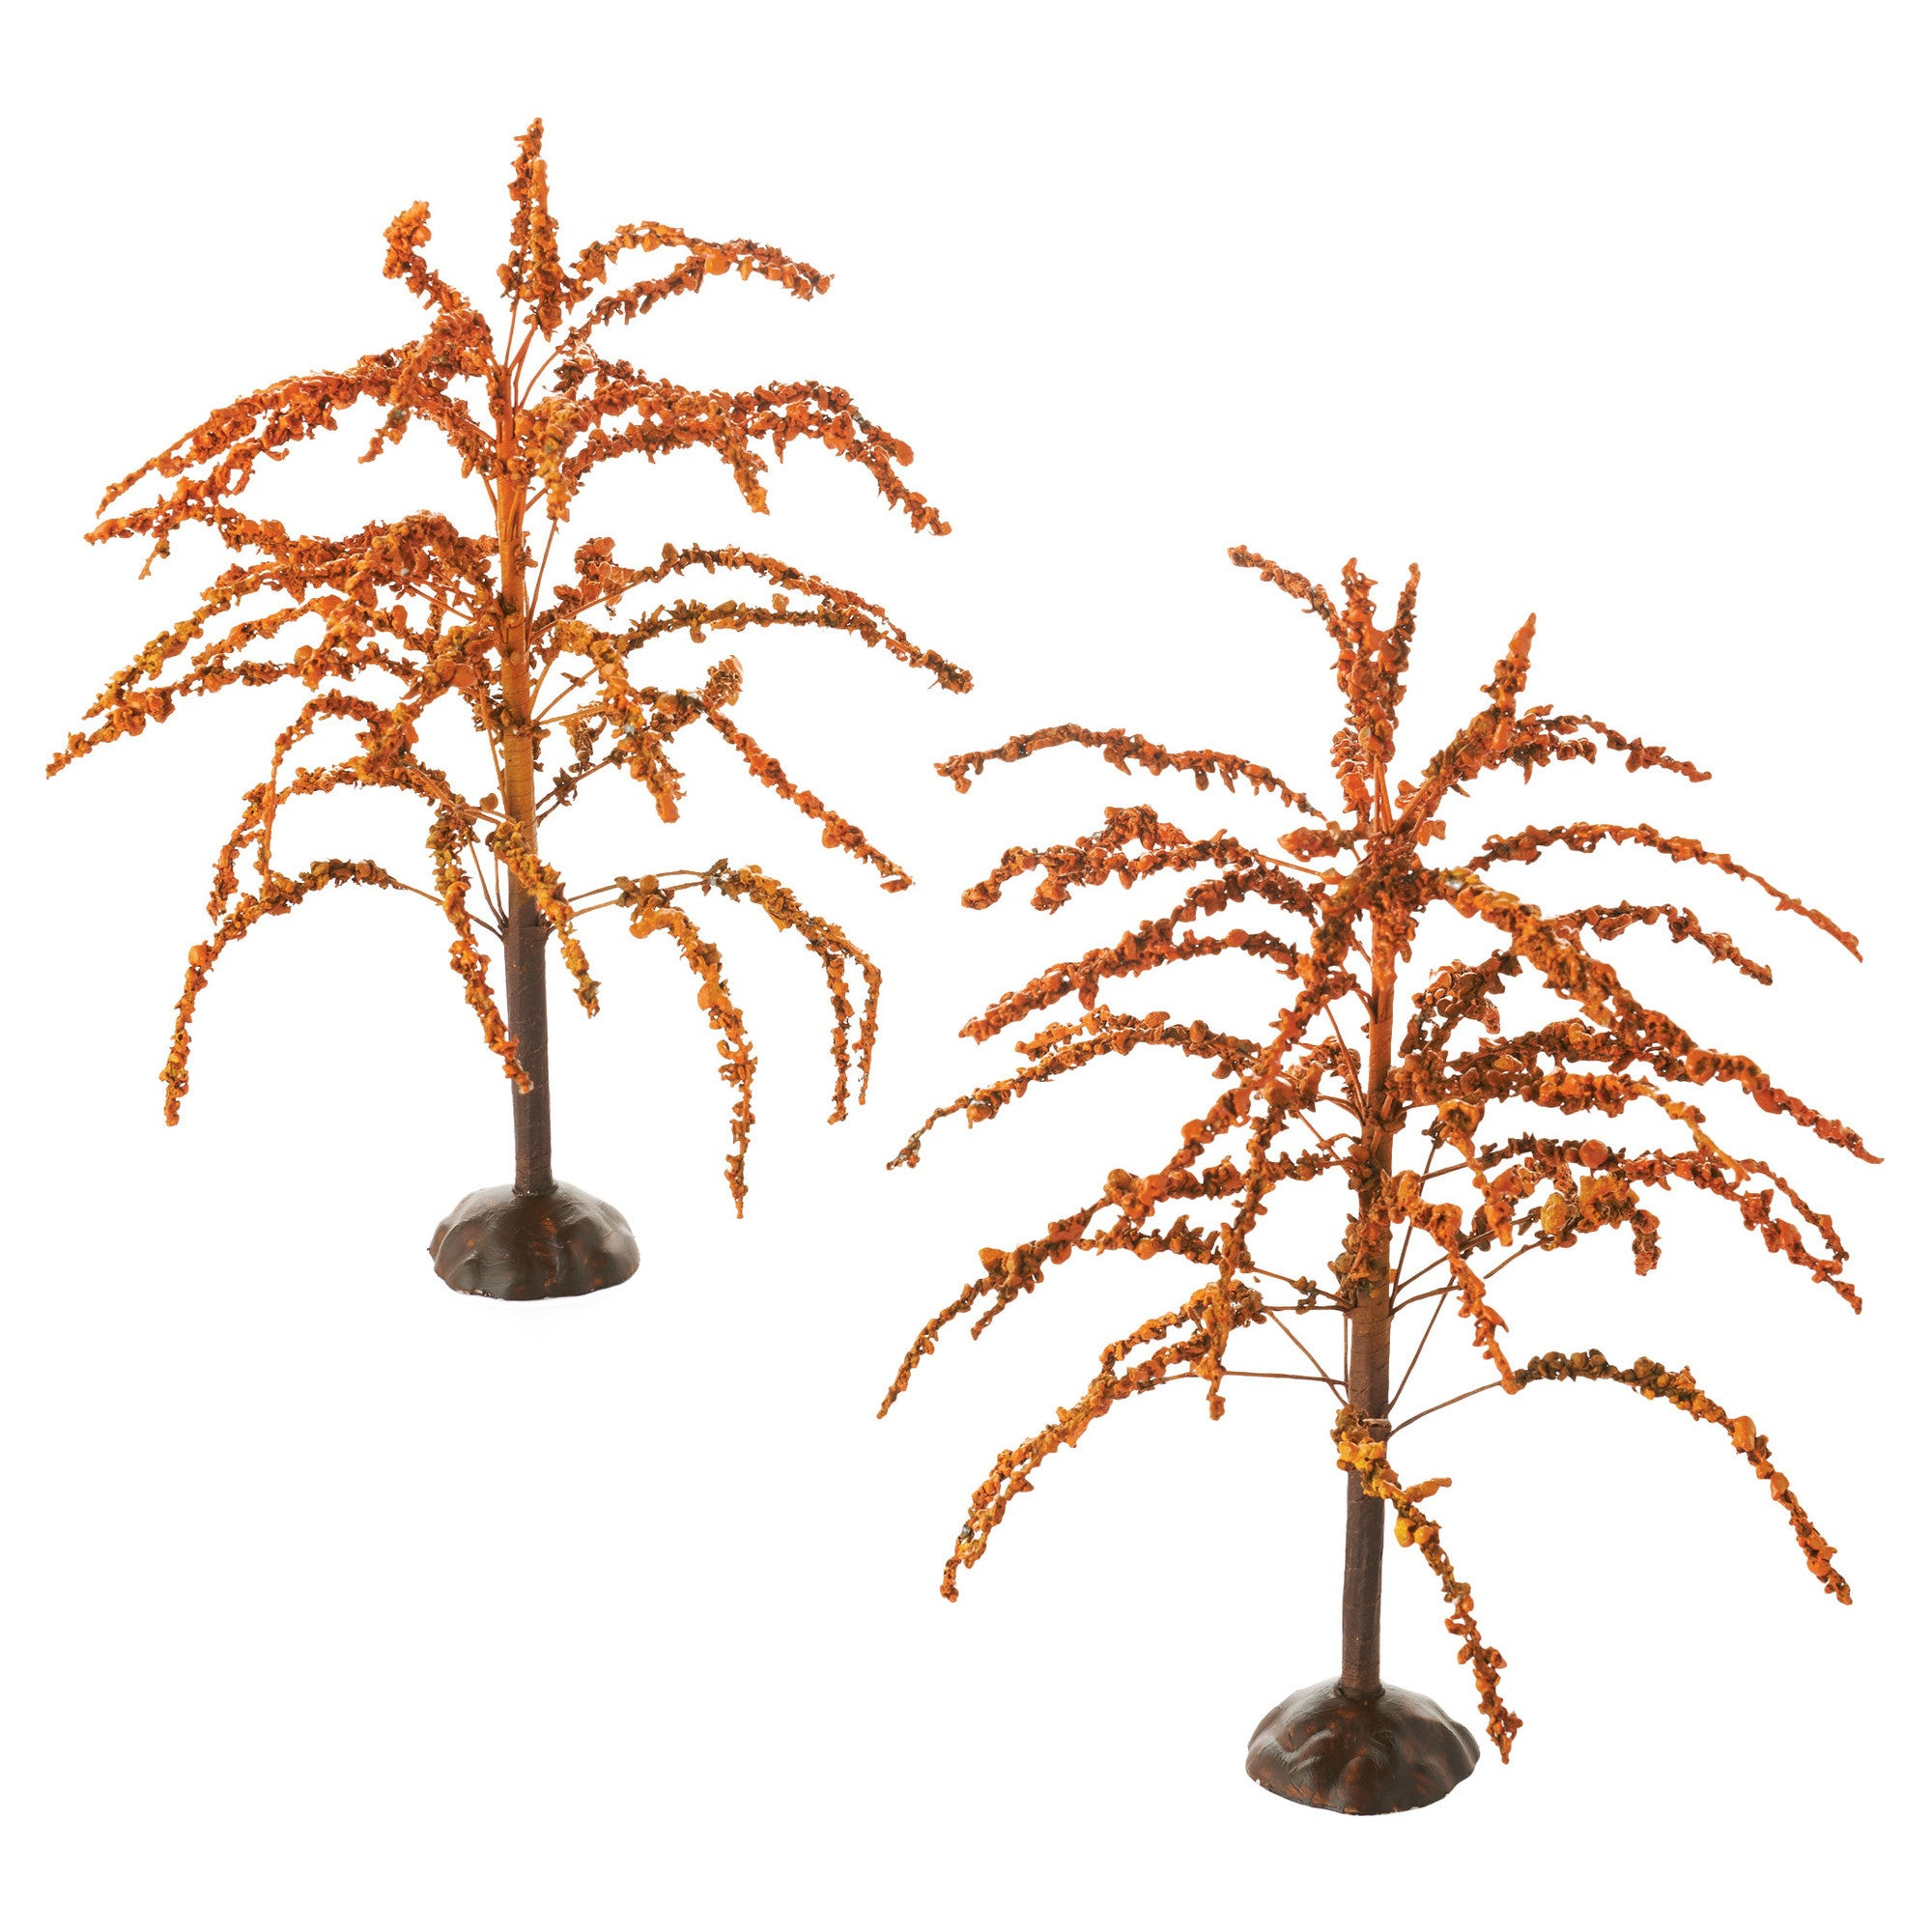 Autumn Splendor Trees Halloween Village Accessories by Dept 56